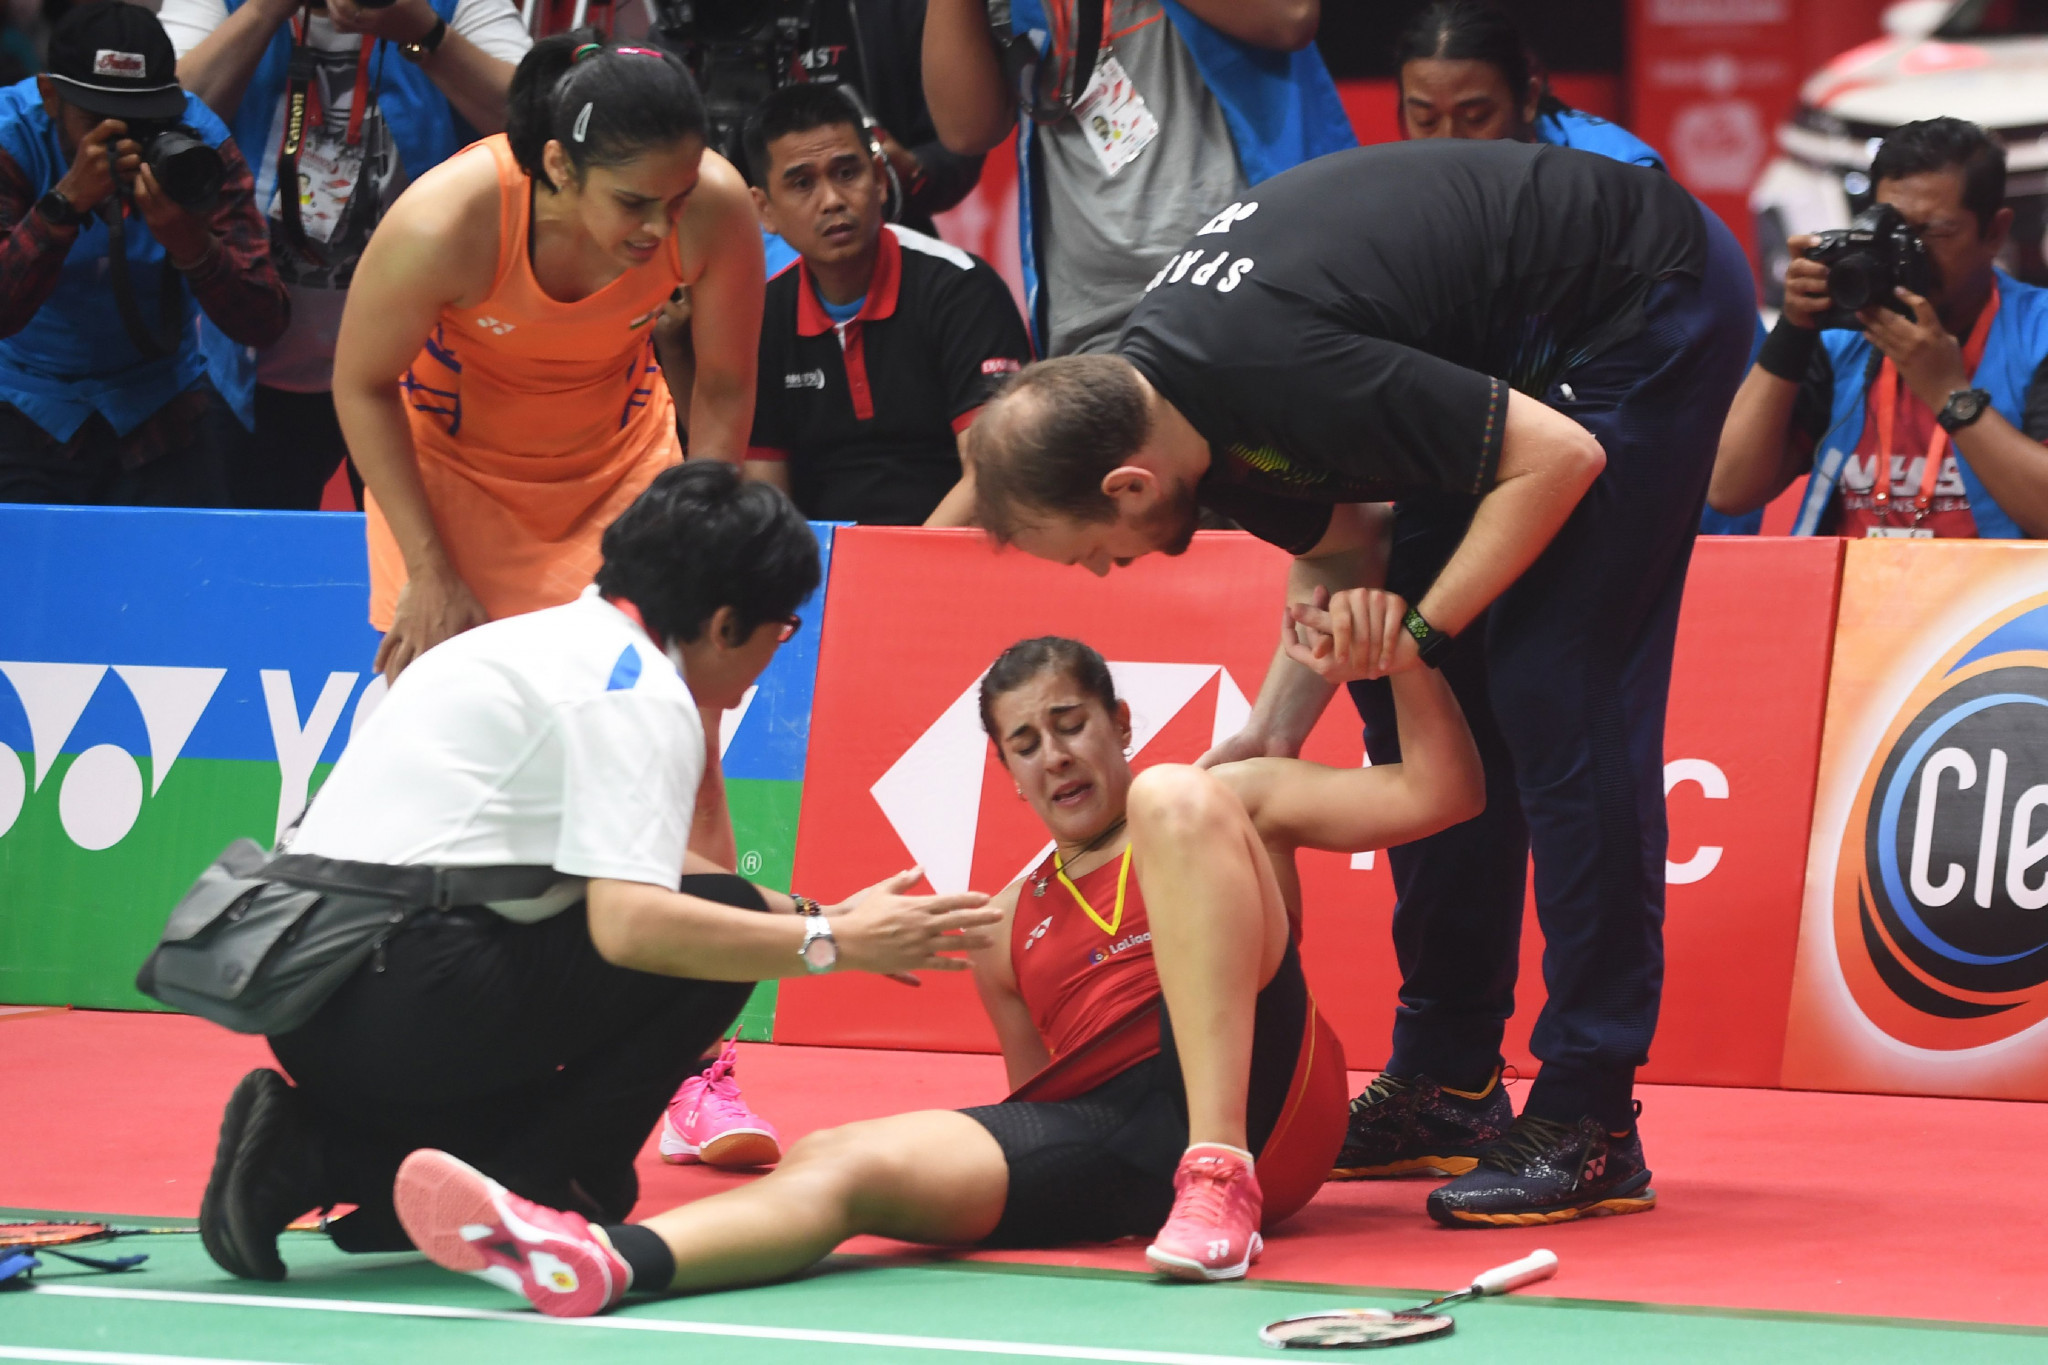 Spaniard Carolina Marin was forced to retire from the women's singles final against Saina Nehwal ©Getty Images